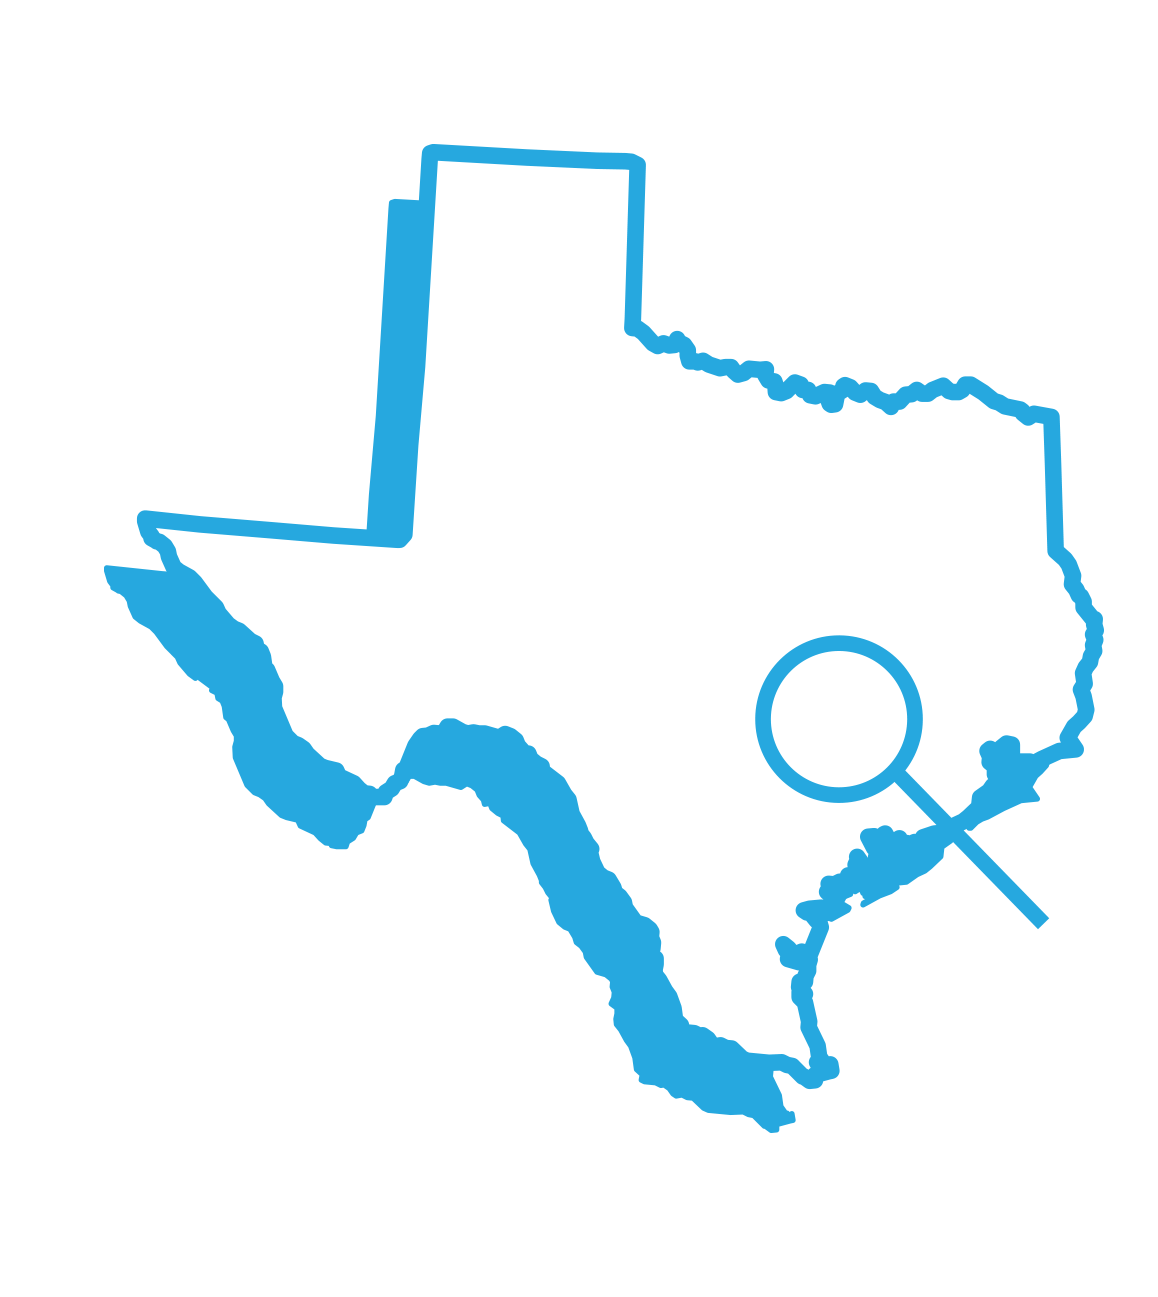 Outline of the State of Texas with a magnifying glass